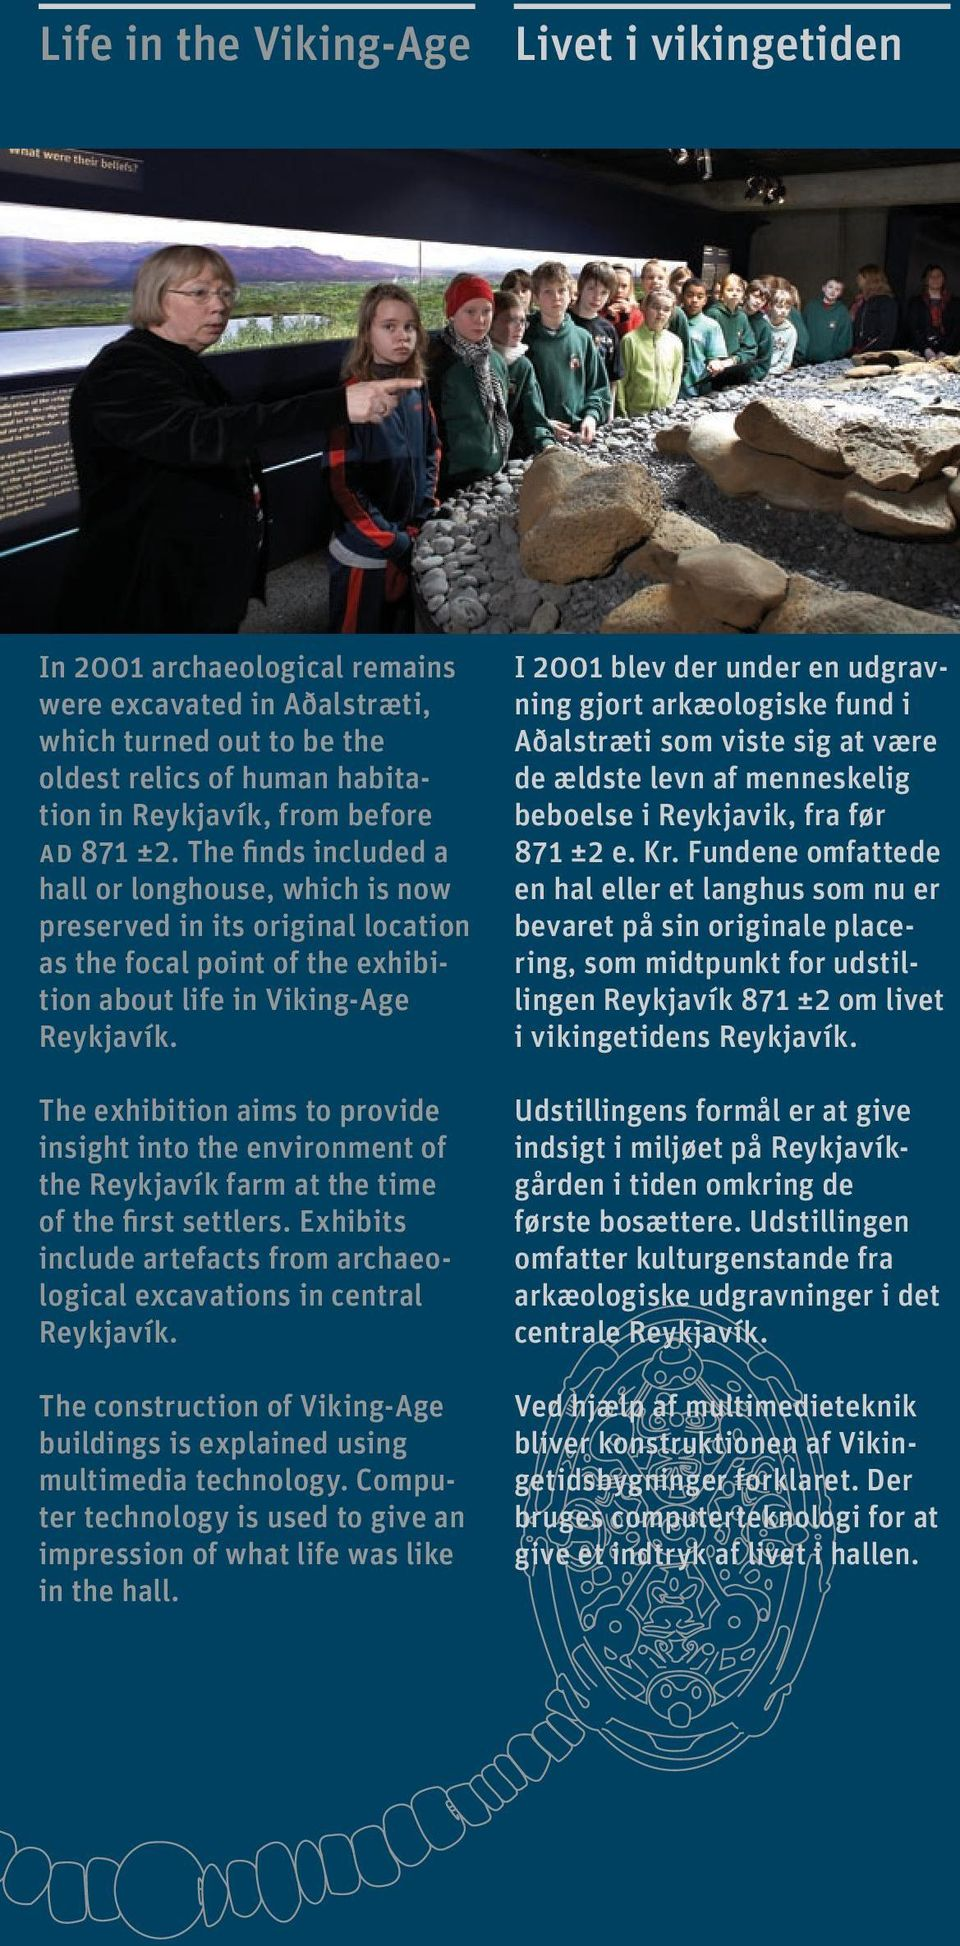 The exhibition aims to provide insight into the environment of the Reykjavík farm at the time of the first settlers. Exhibits include artefacts from archaeological excavations in central Reykjavík.